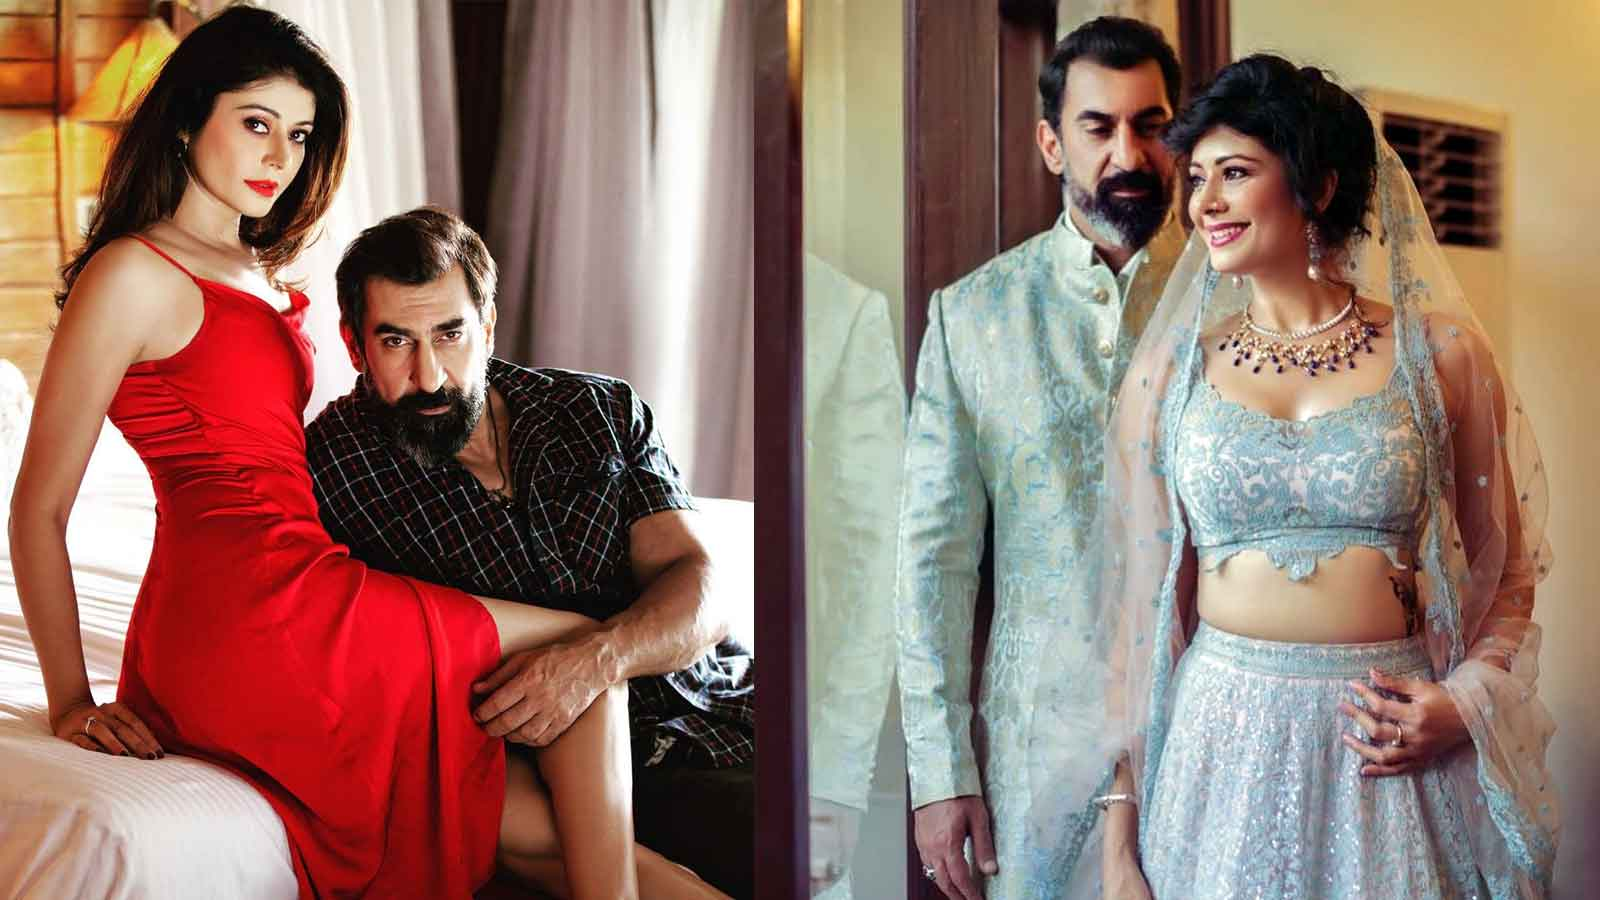 nawab-shah-spills-the-beans-about-how-he-proposed-to-pooja-batra